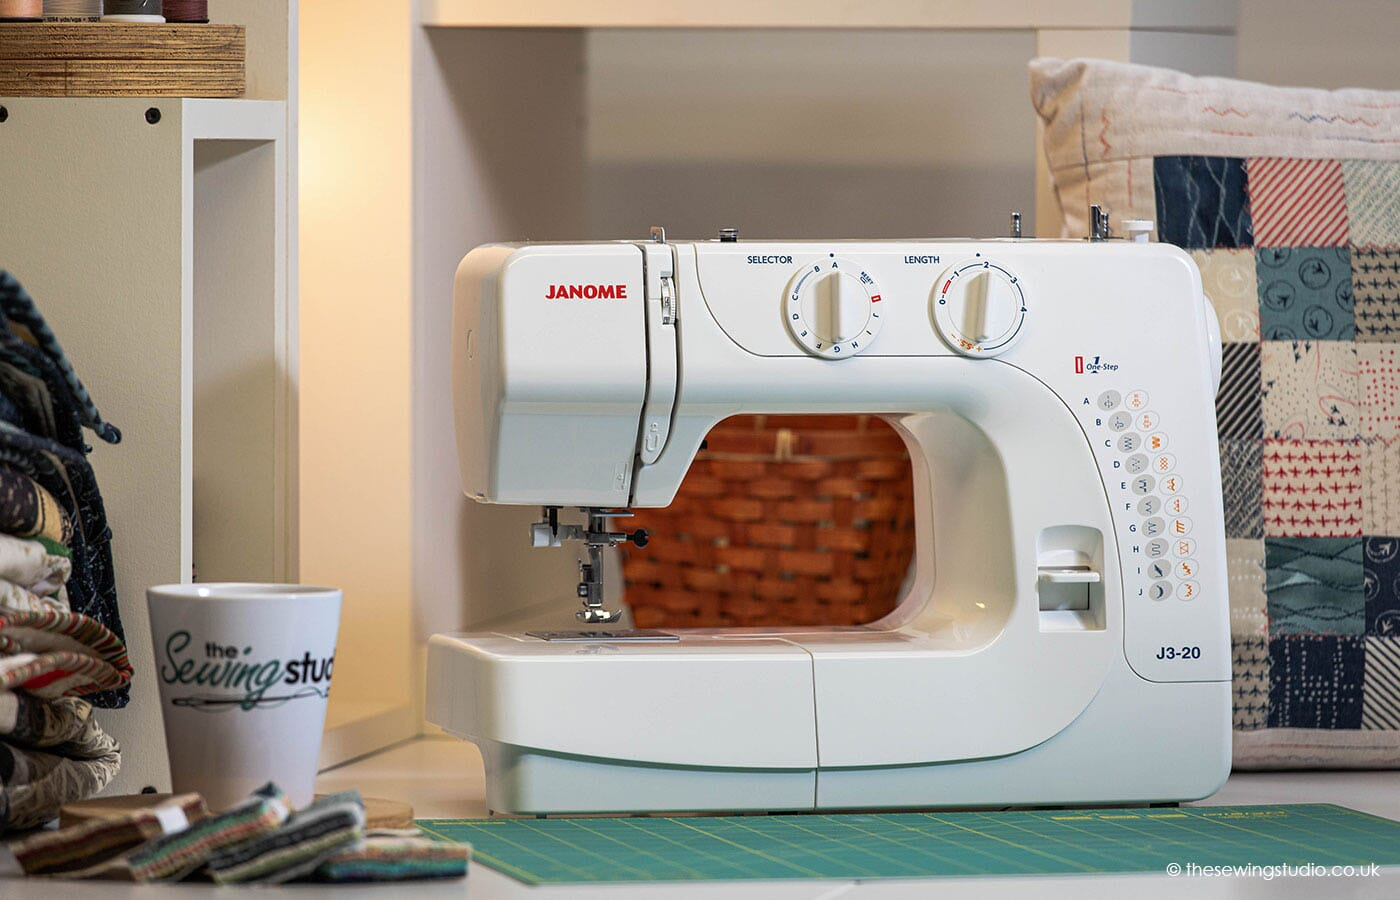 Janome J3-20 Sewing Machine in a Sewing Room